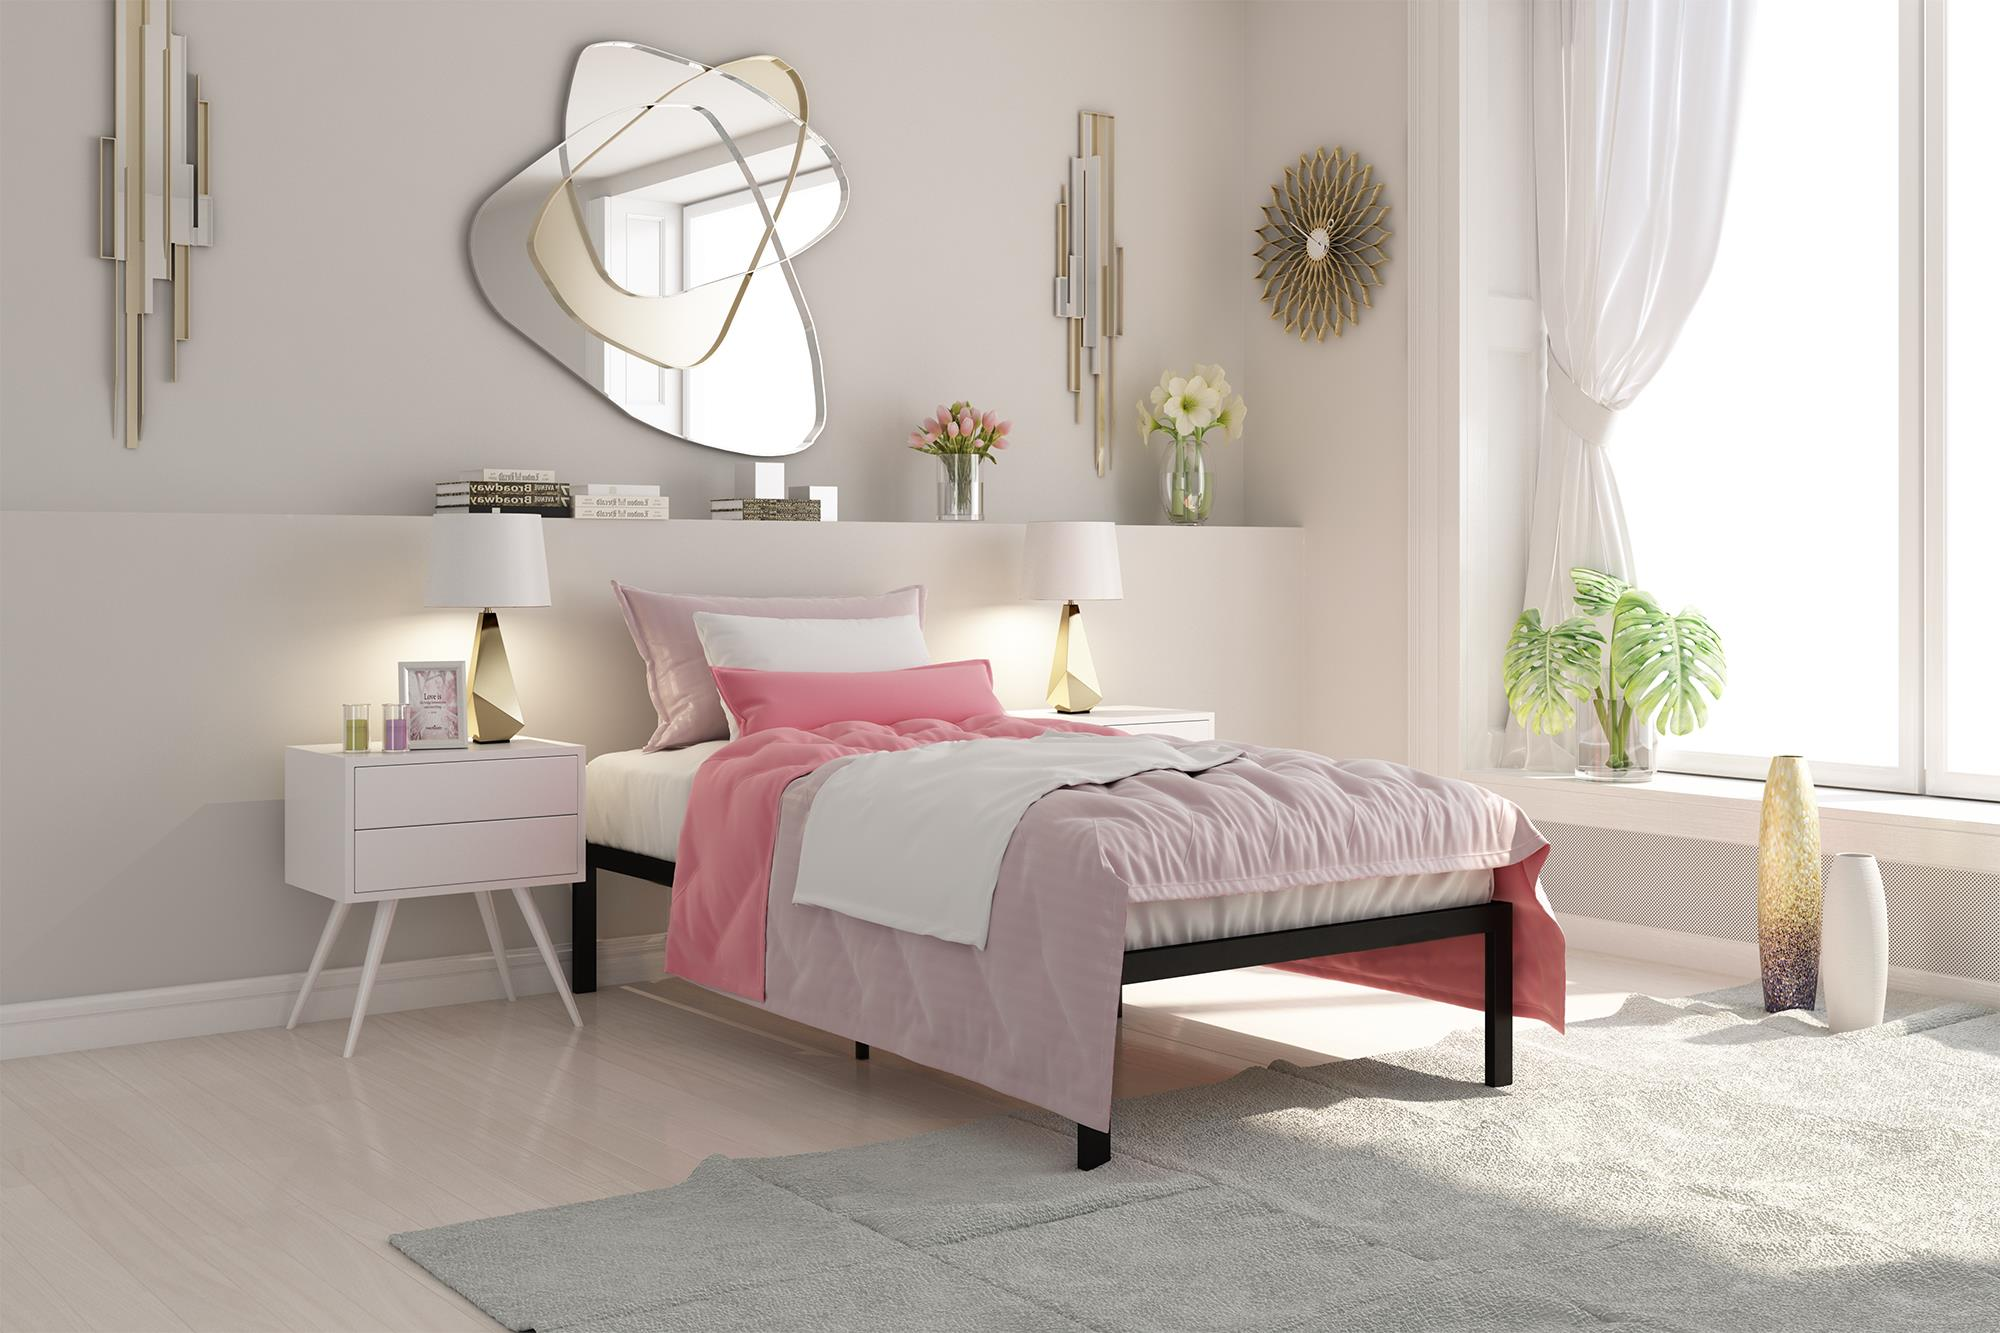 Signature Sleep Premium Modern Metal Platform Bed with Headboard, Multiple Finishes and Sizes by Dorel Home Products